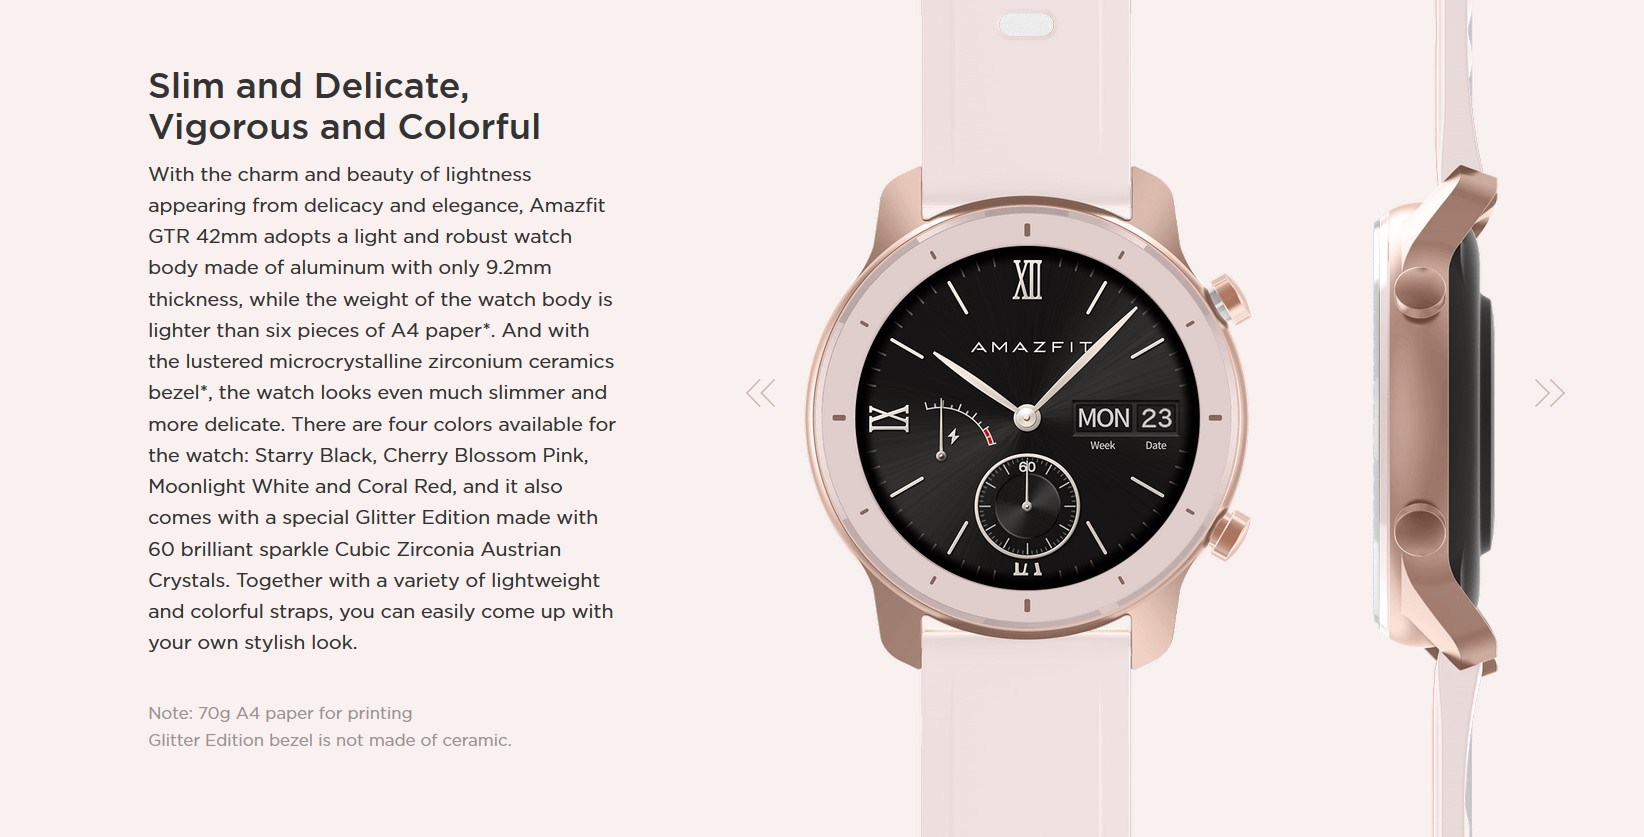 https://delshop.bg/image/catalog/Watch/2019/GTR42mm/xiaomi%2042-18.jpg